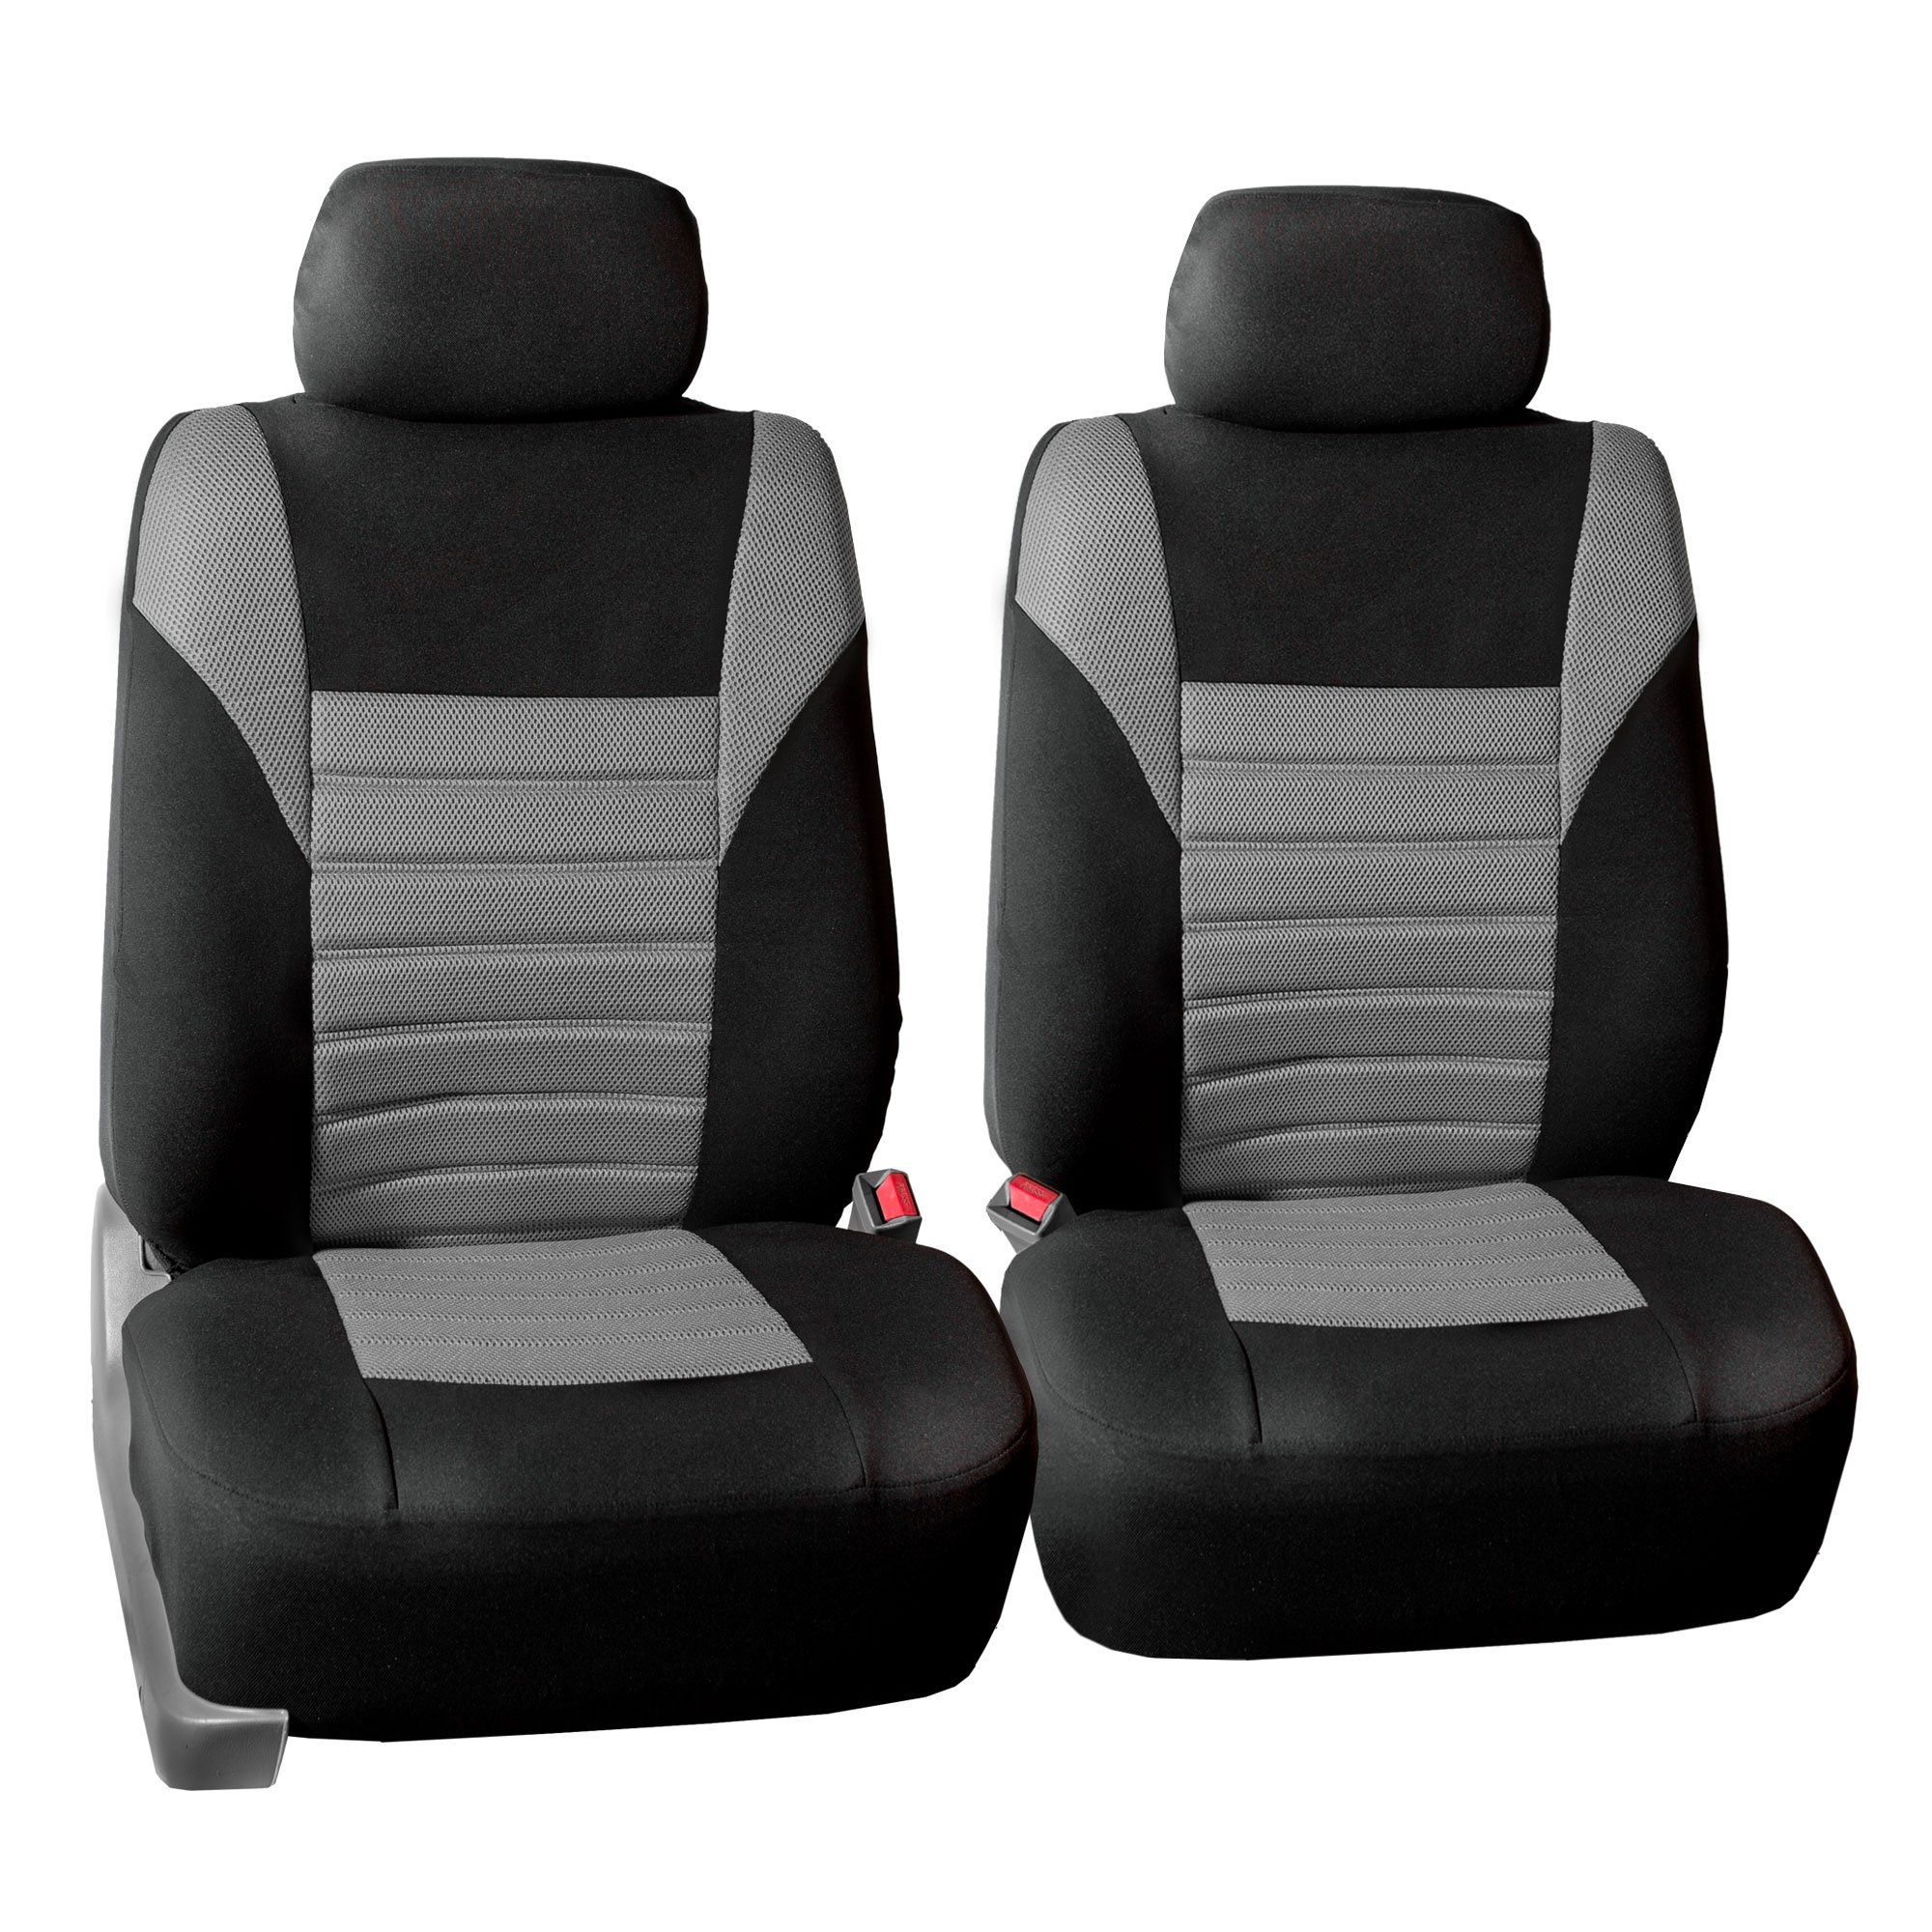 FH Group FB068102 Premium 3D Air Mesh Seat Covers Pair Set (Airbag Compatible), Gray/Black Color- Fit Most Car, Truck, SUV, or Van by FH Group